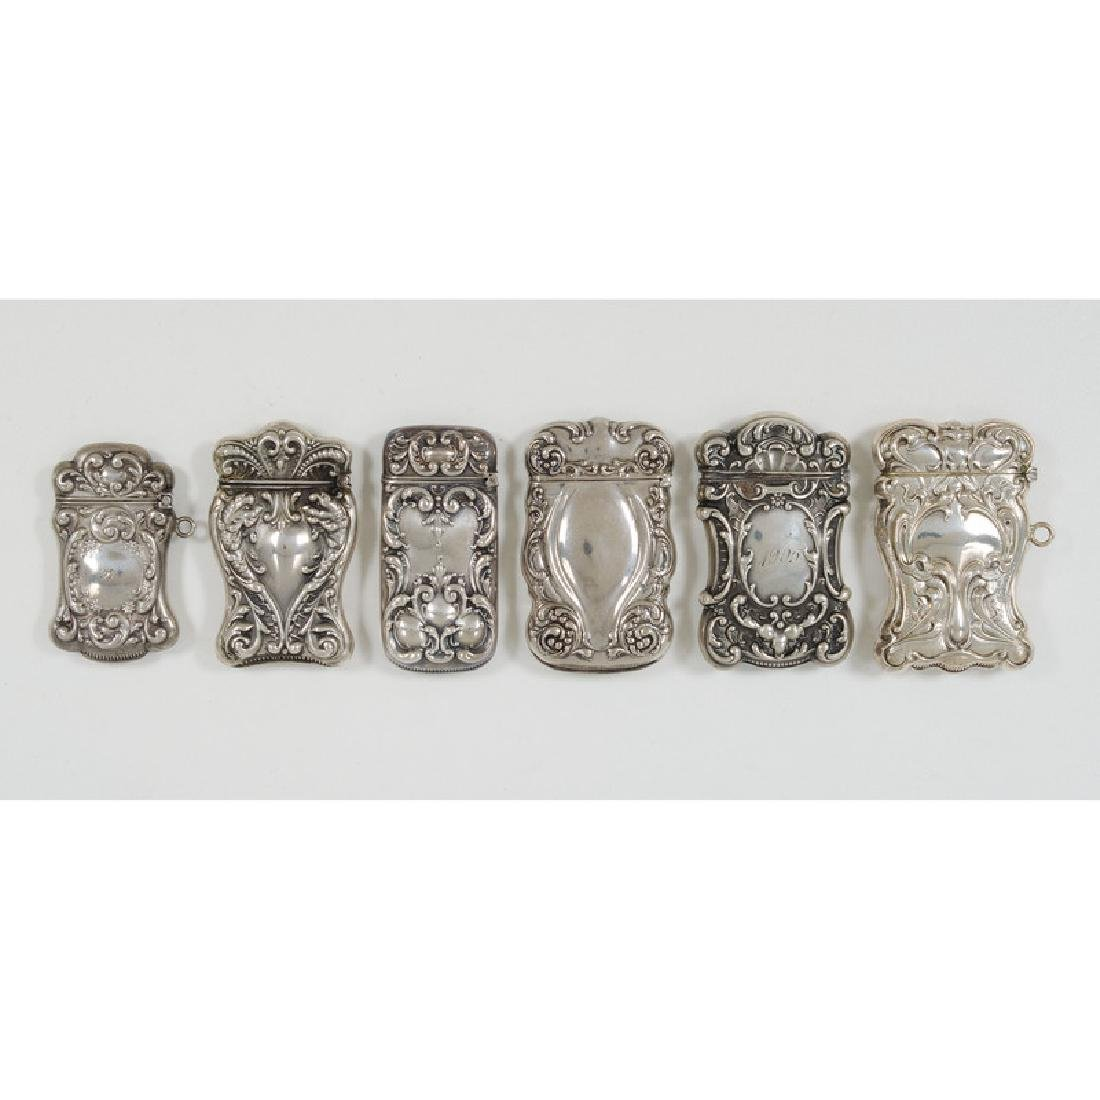 Victorian Sterling Match Safes - 3